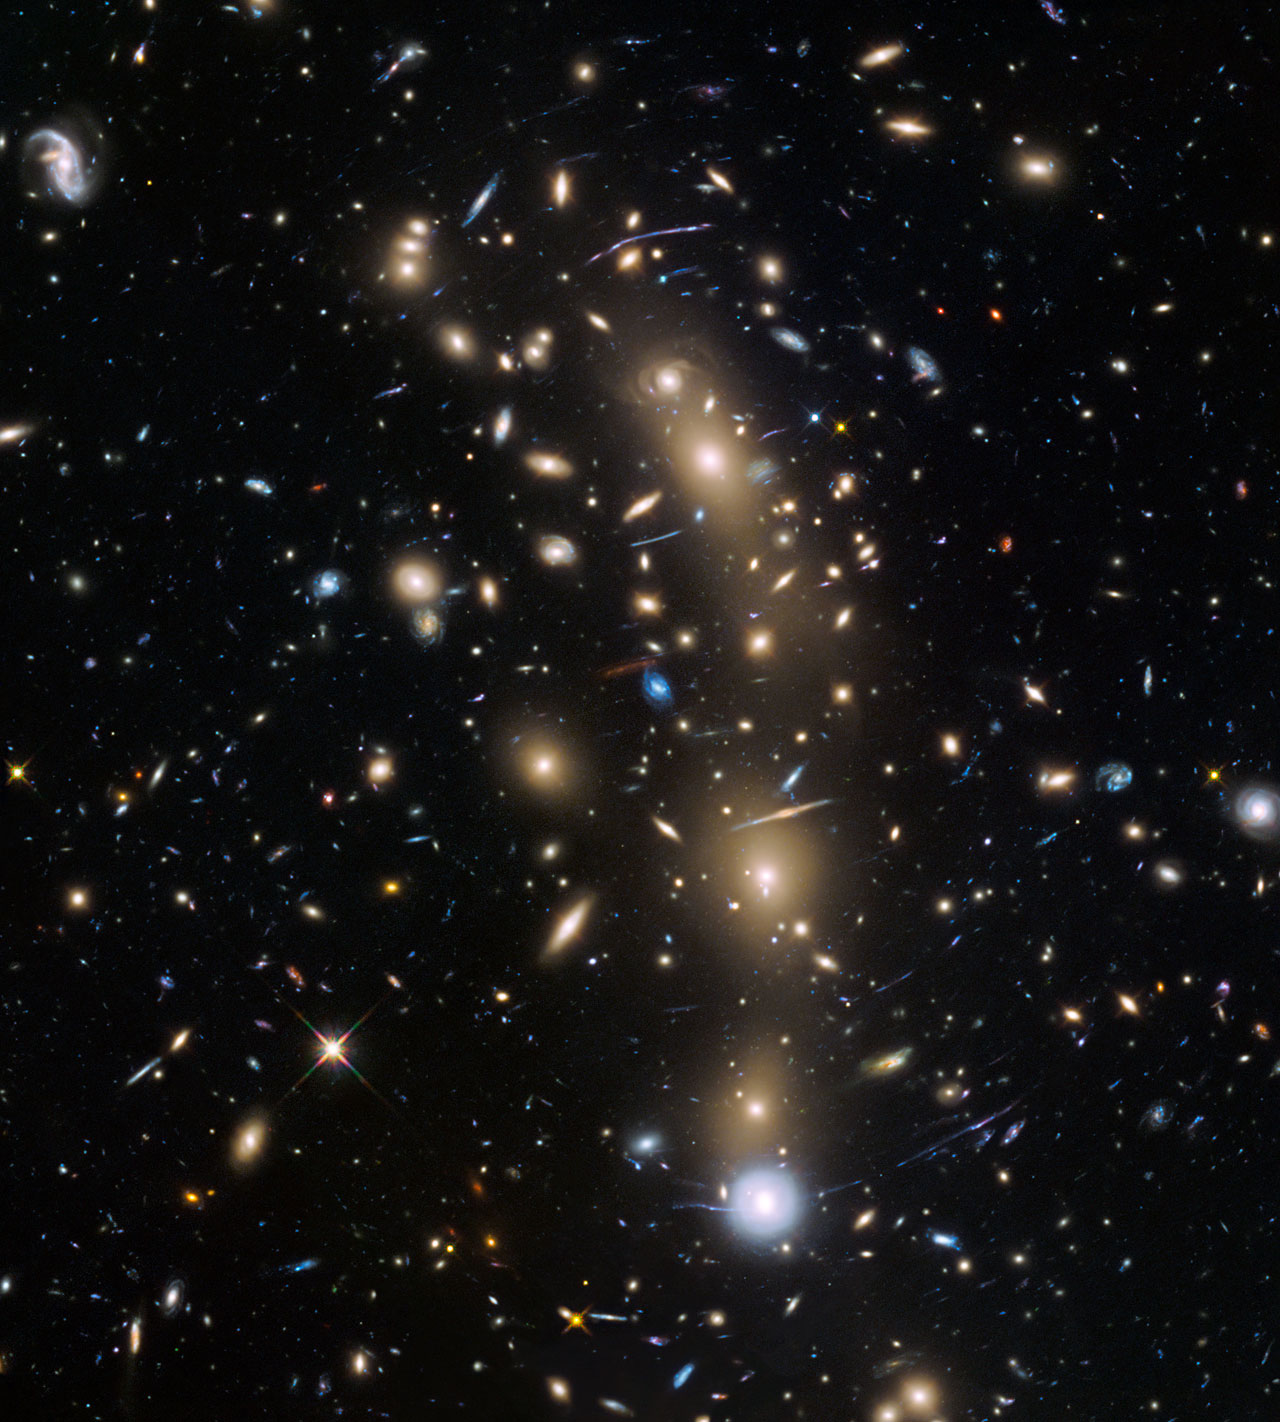 Science Release: Hubble spies Big Bang frontiers